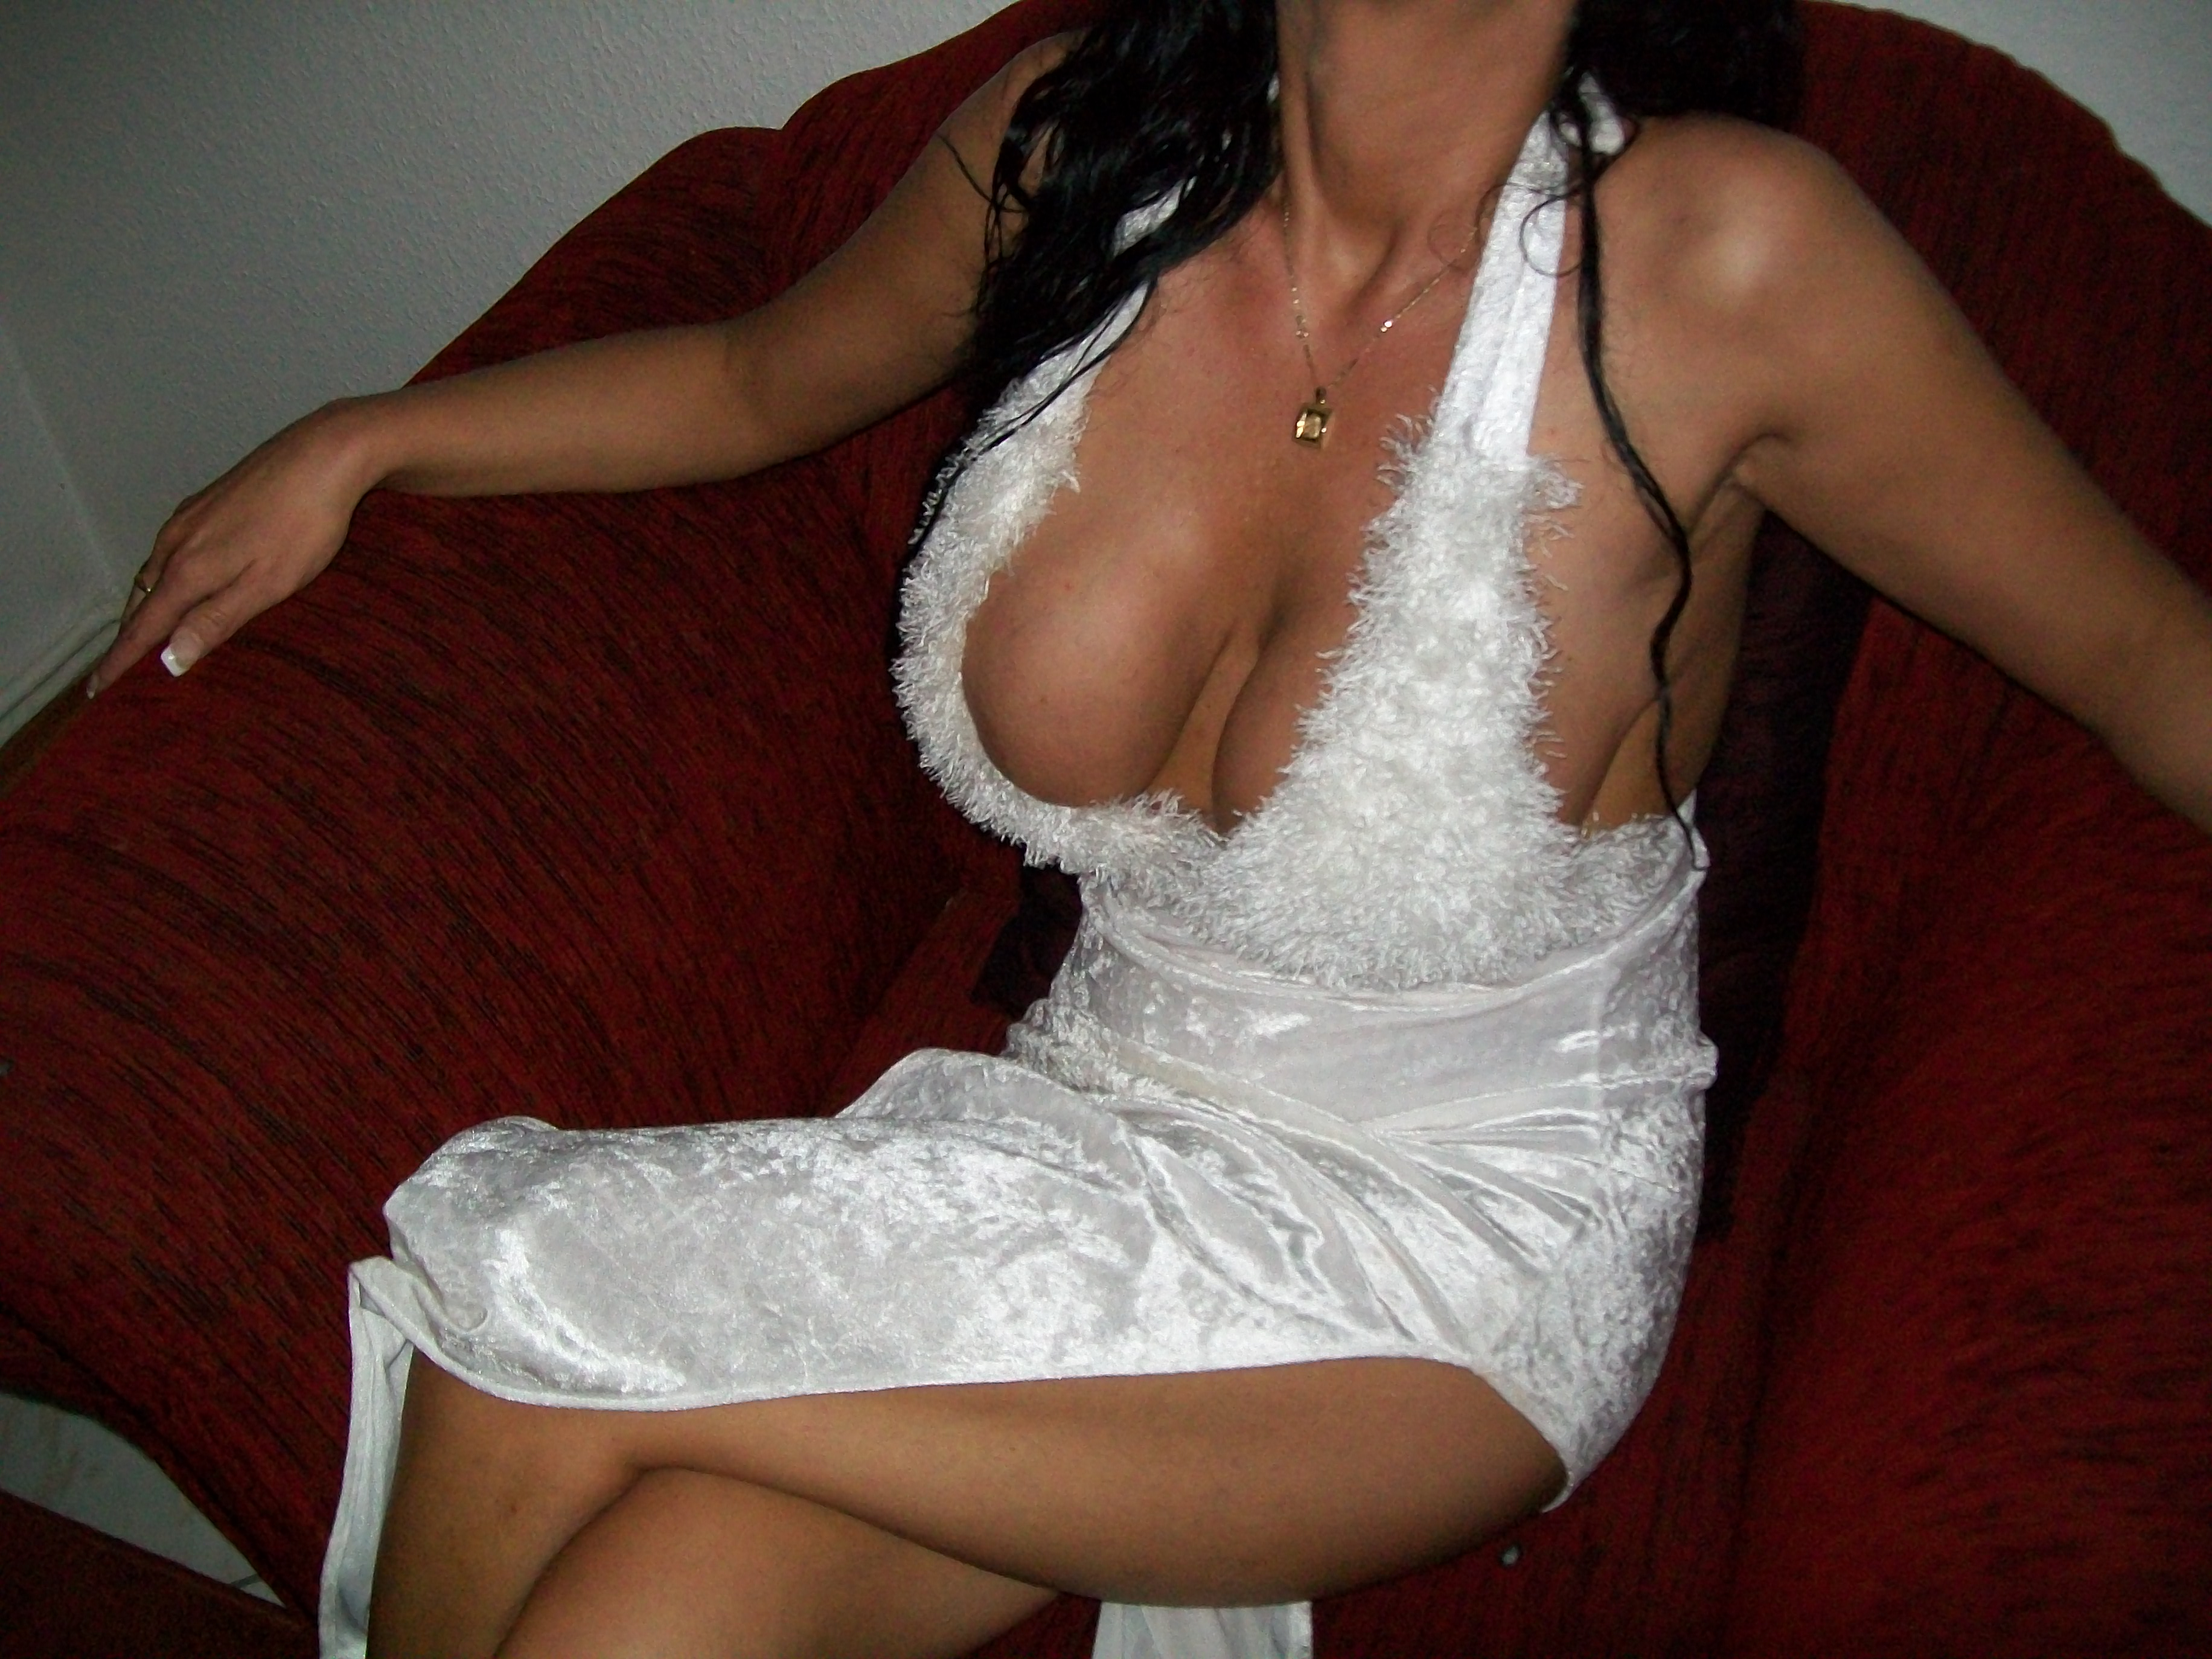 sextreffen in bremen ebony sex